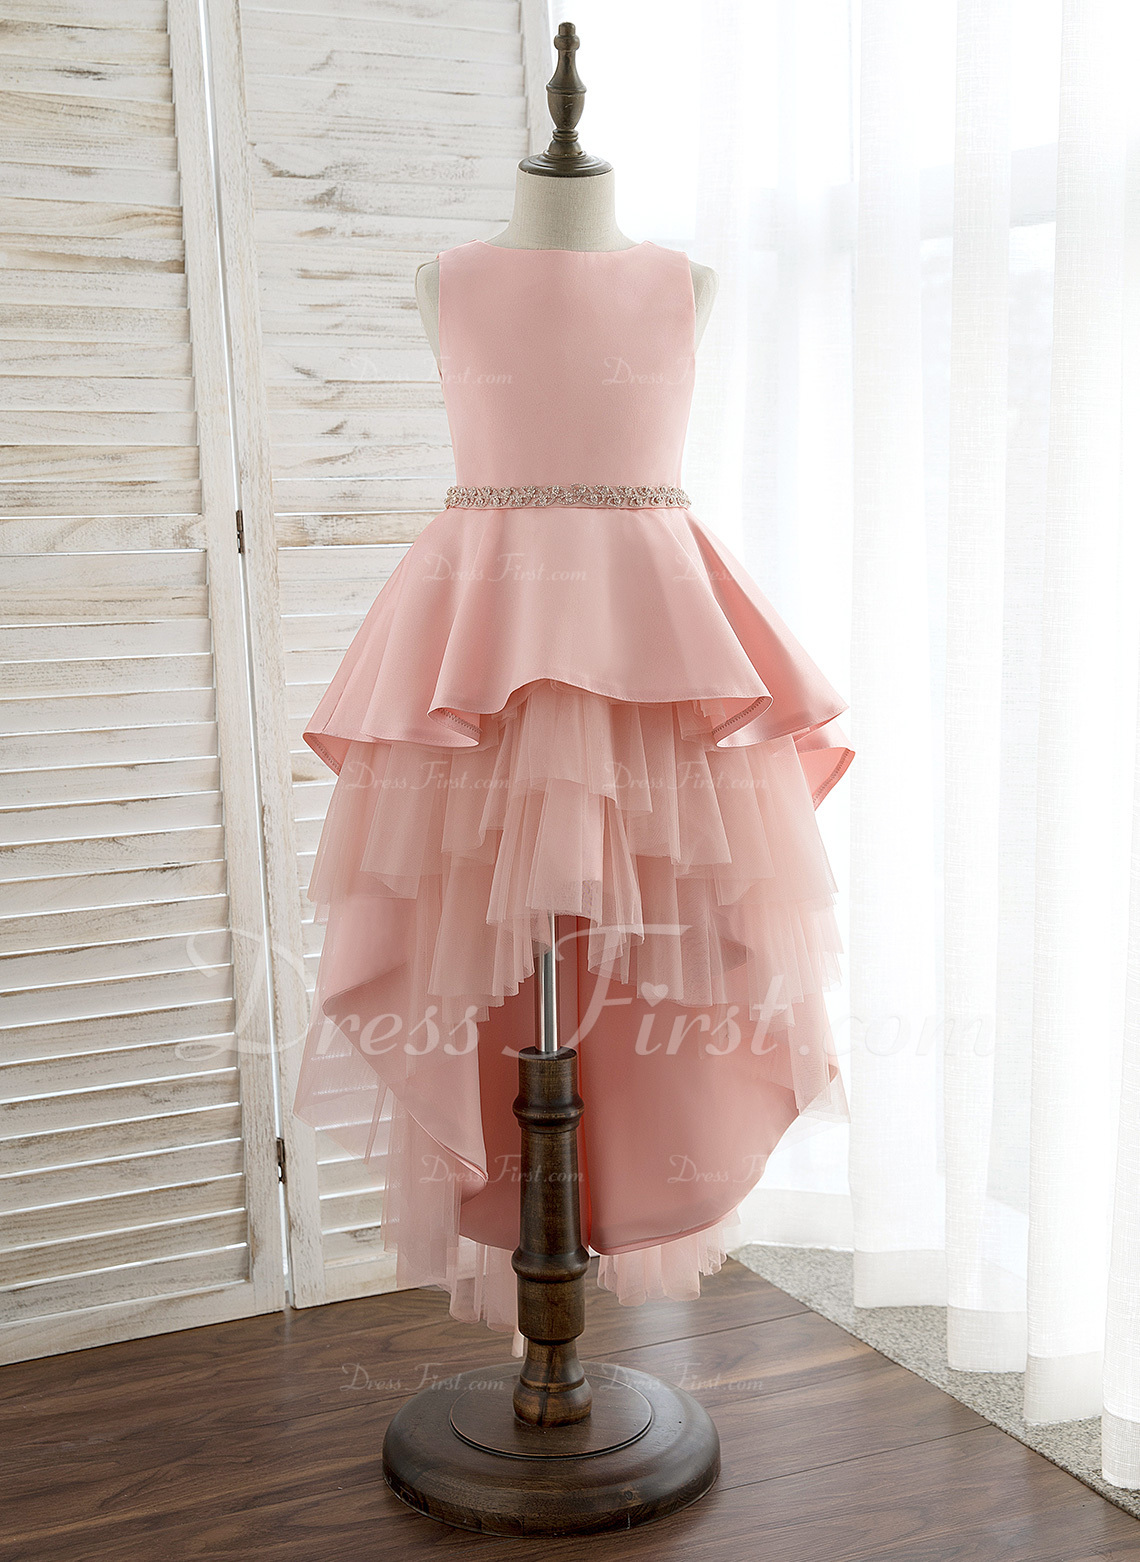 6dfa5a65d2 Ball-Gown Princess Asymmetrical Flower Girl Dress - Satin Tulle Sleeveless  Scoop Neck With Rhinestone  172353